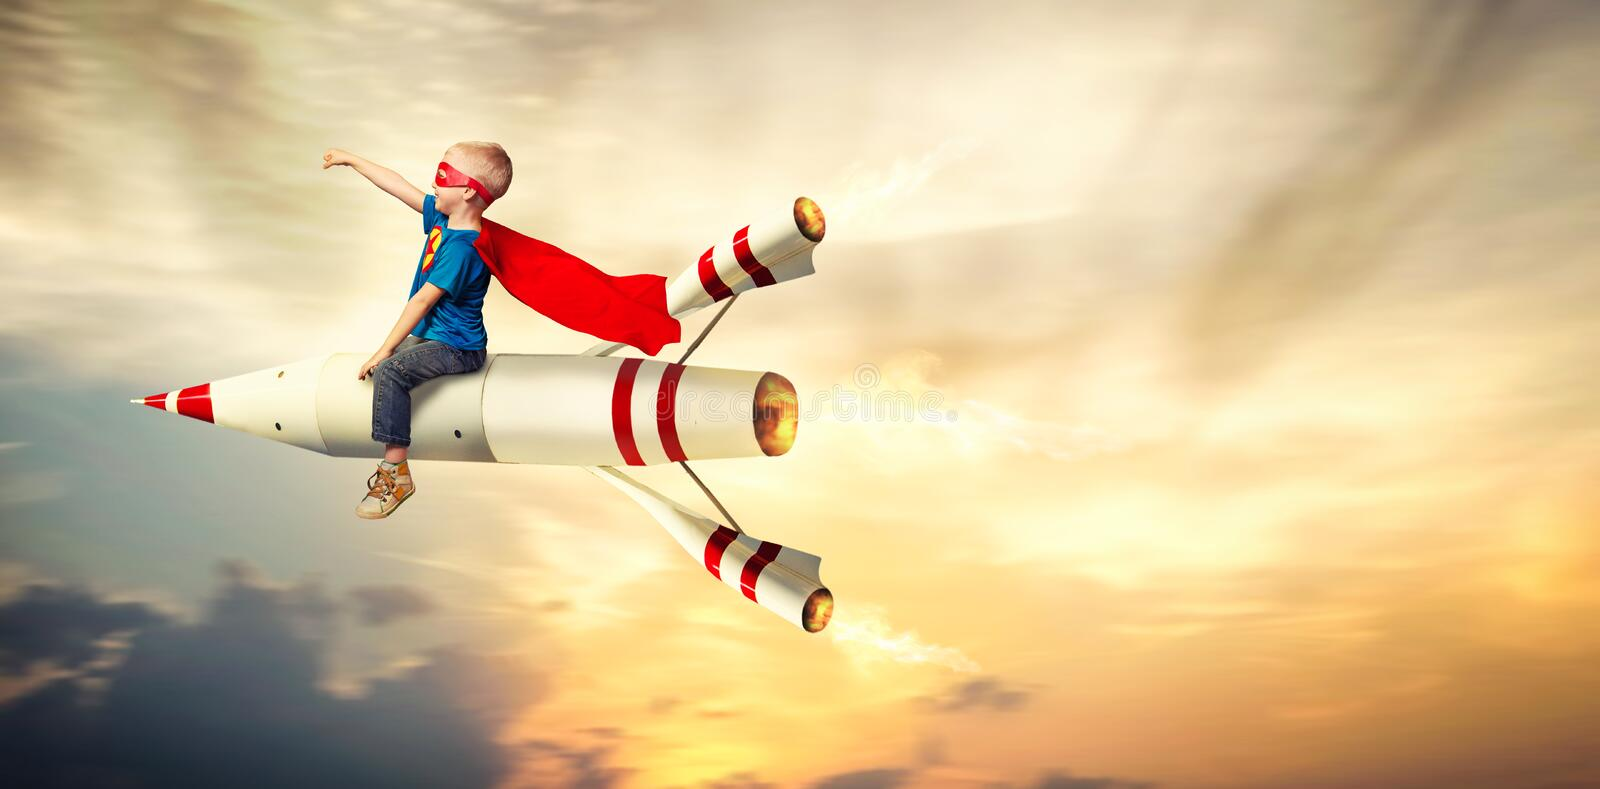 Boy in superhero costume fly on a rocket and show super abilities. stock photos